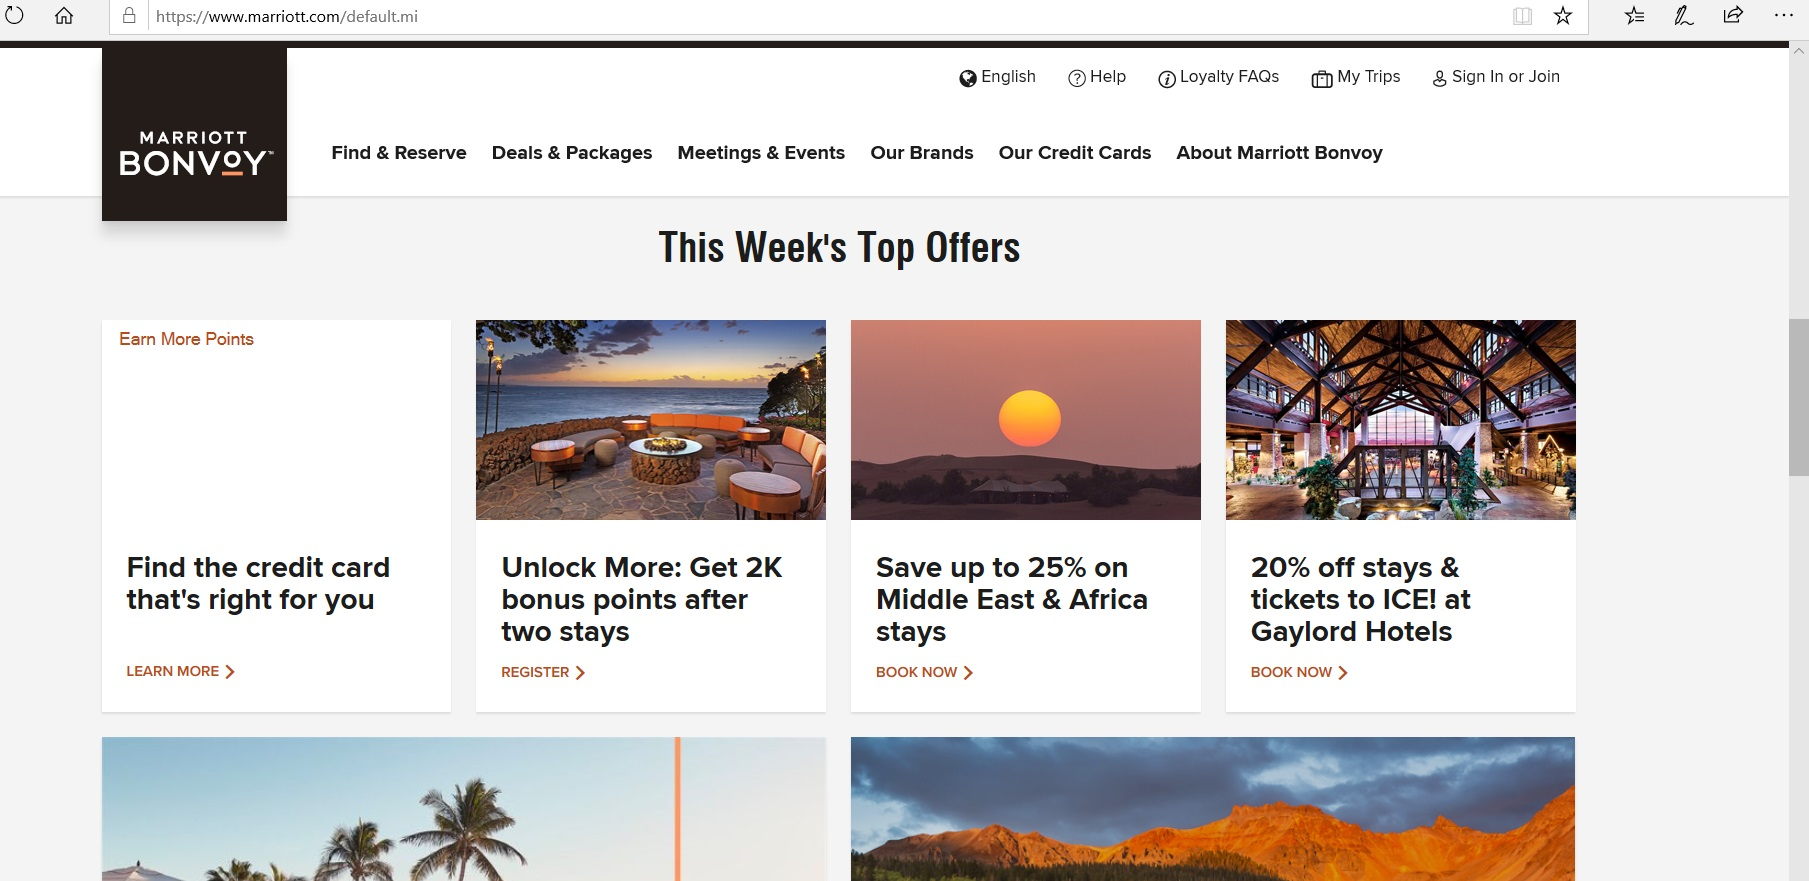 Marriott Bonvoy weekly offers page.